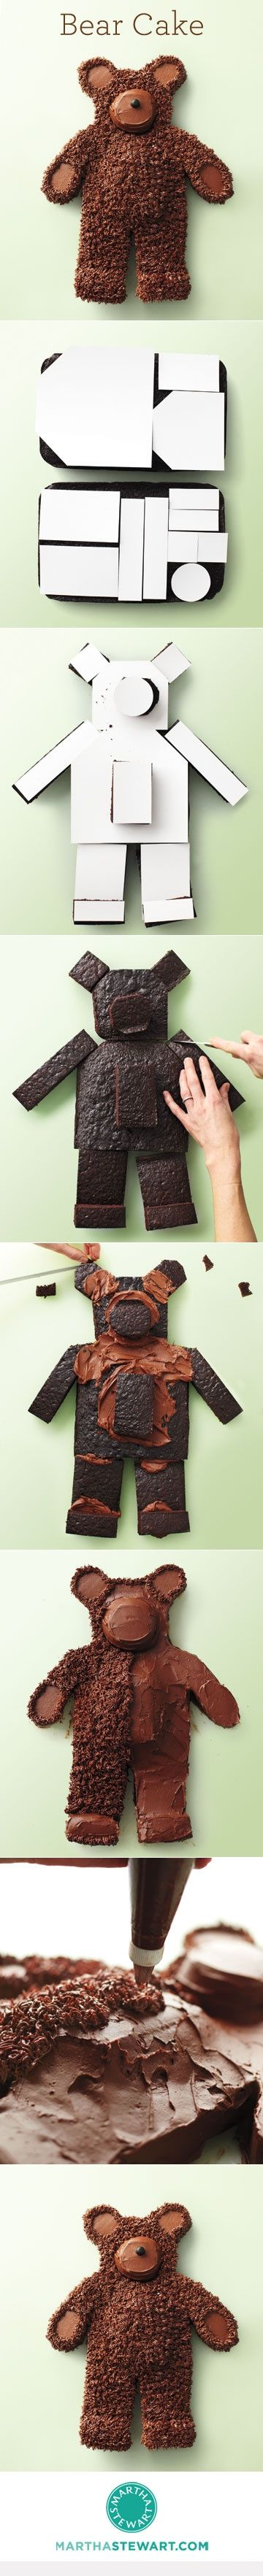 Bear Hugs, ursine chocolate cake #bear #bake #baking #fun #desserts #sweets #cake #creative #edibles